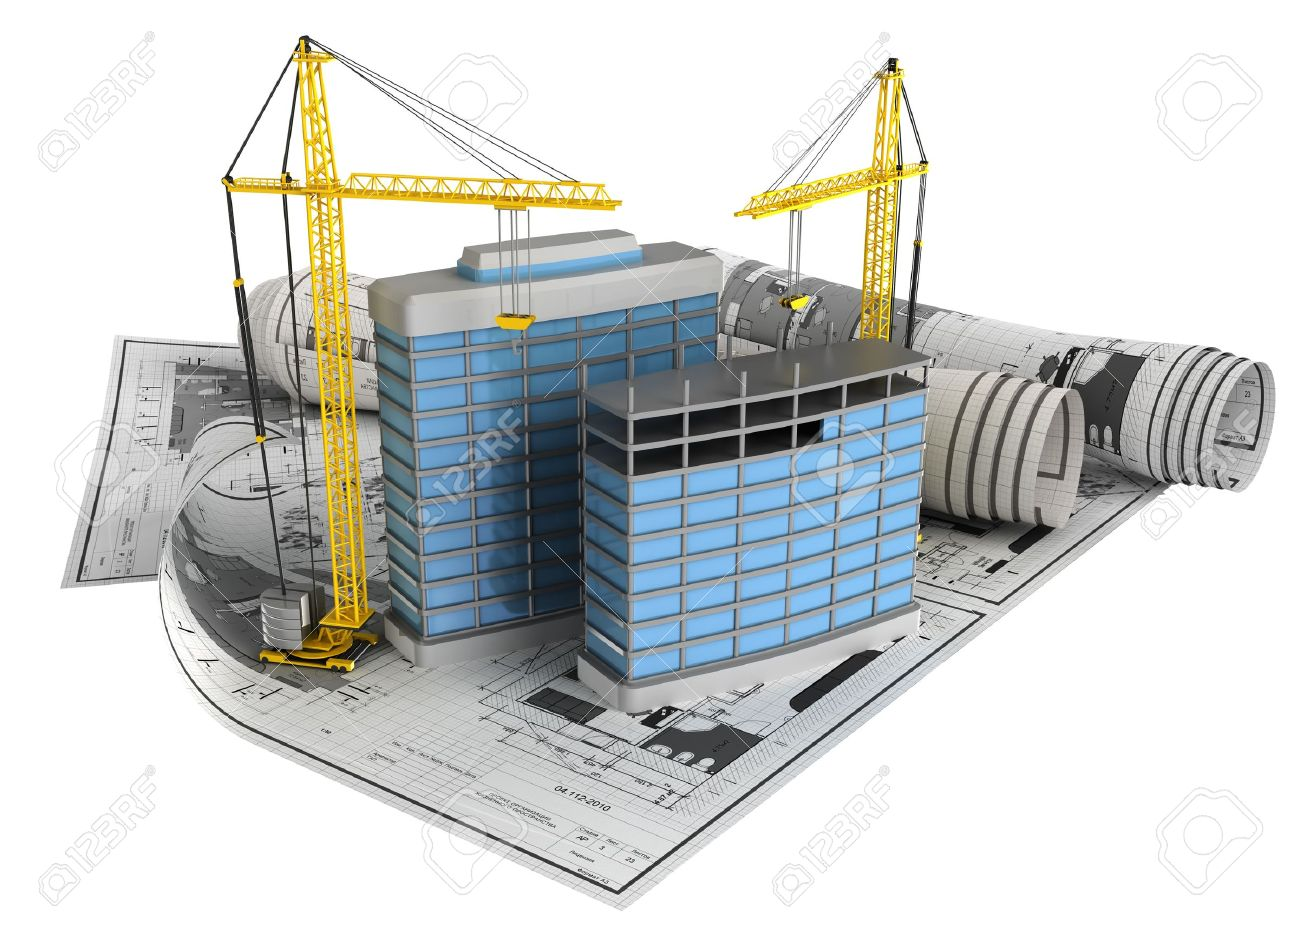 Plans measure 3d illustration of building construction concept isoalted icon over white background